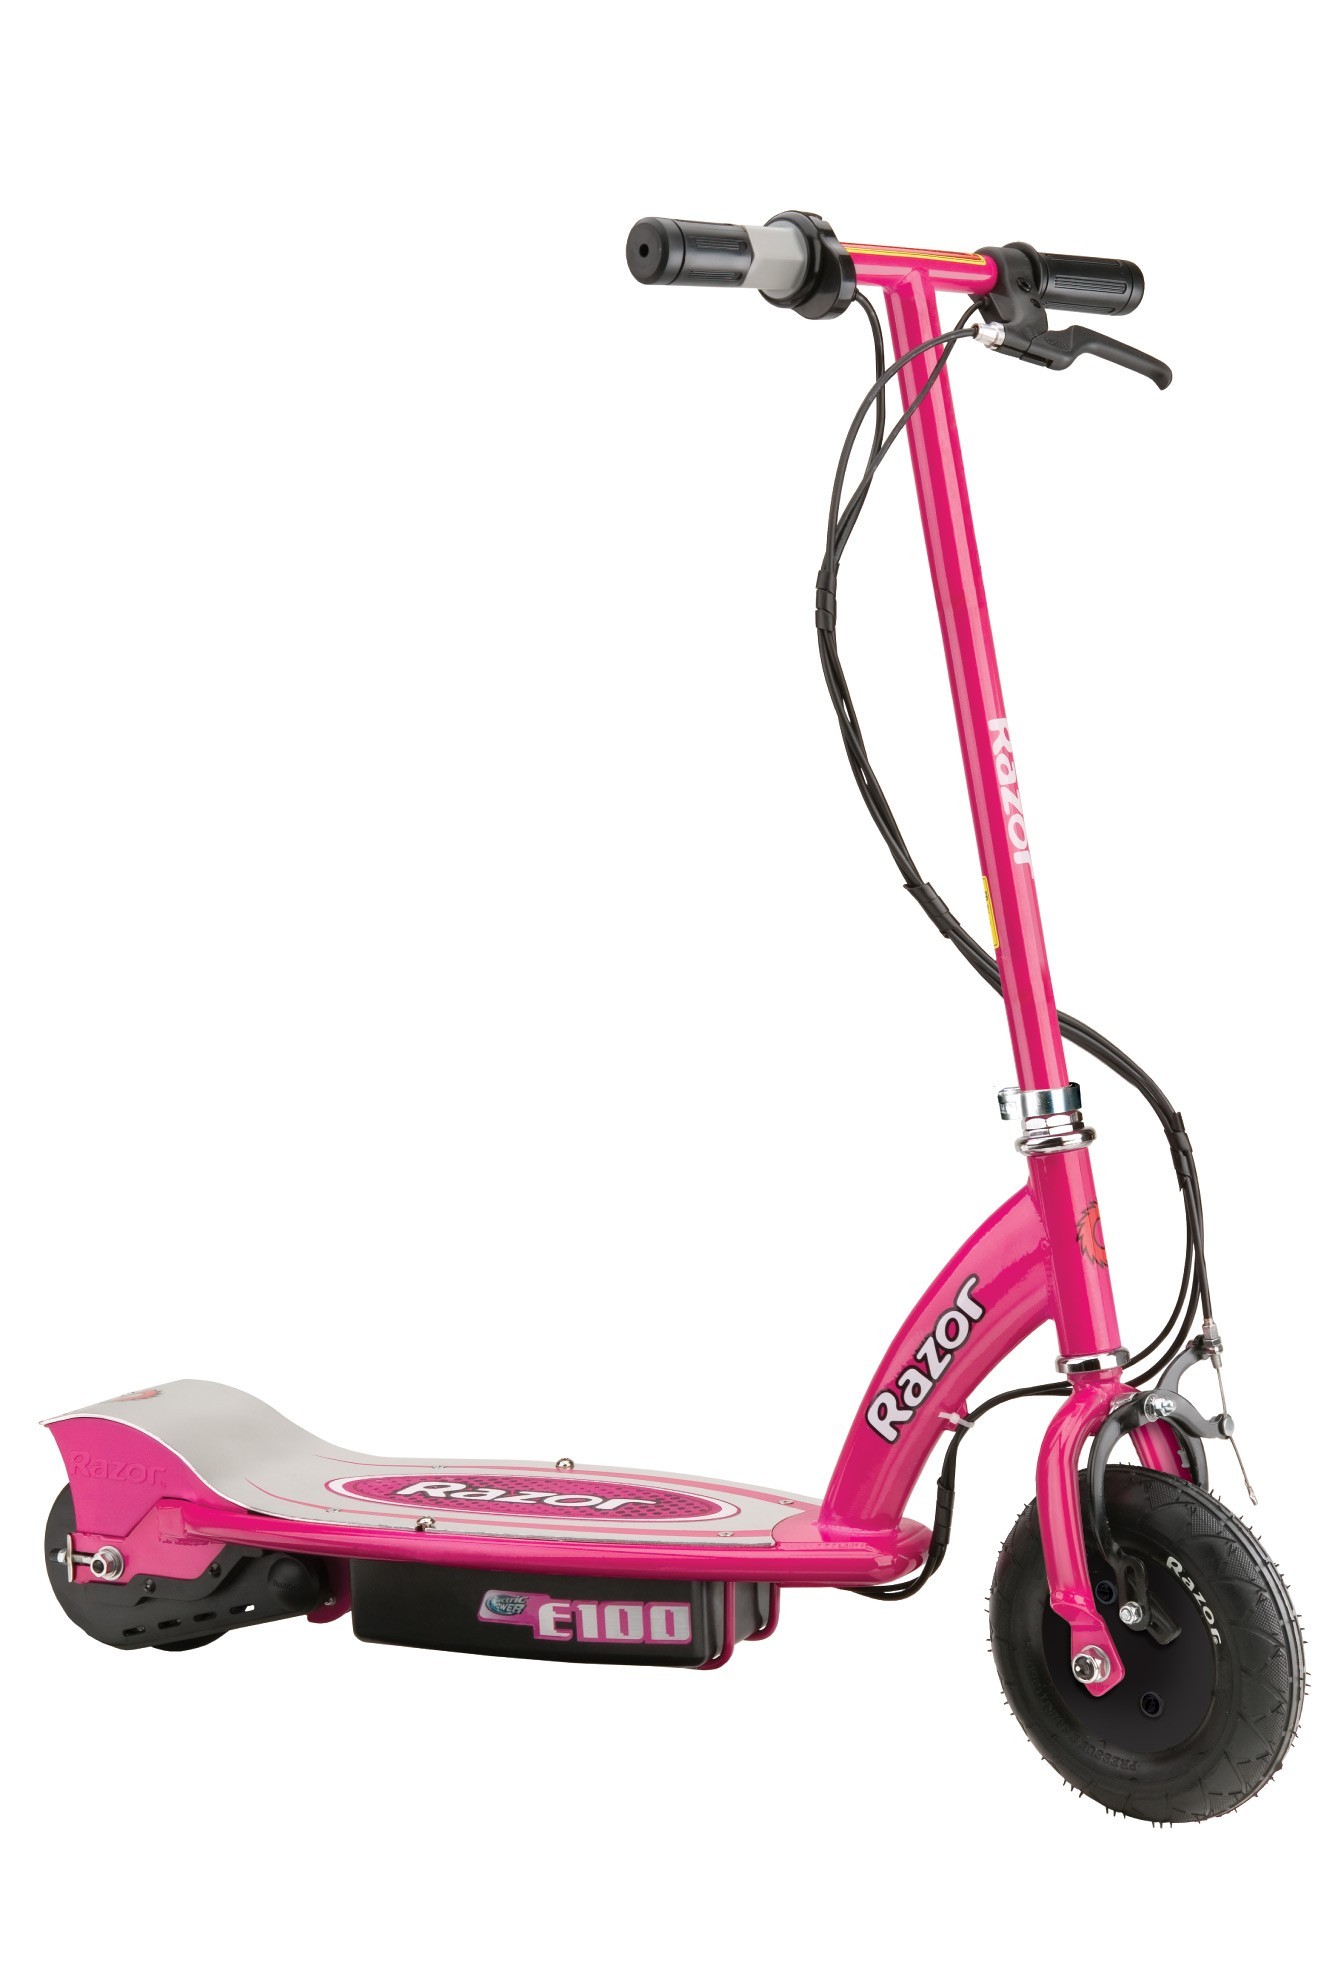 Razor 13111261 E100 Electric Scooter - Pink Scooter